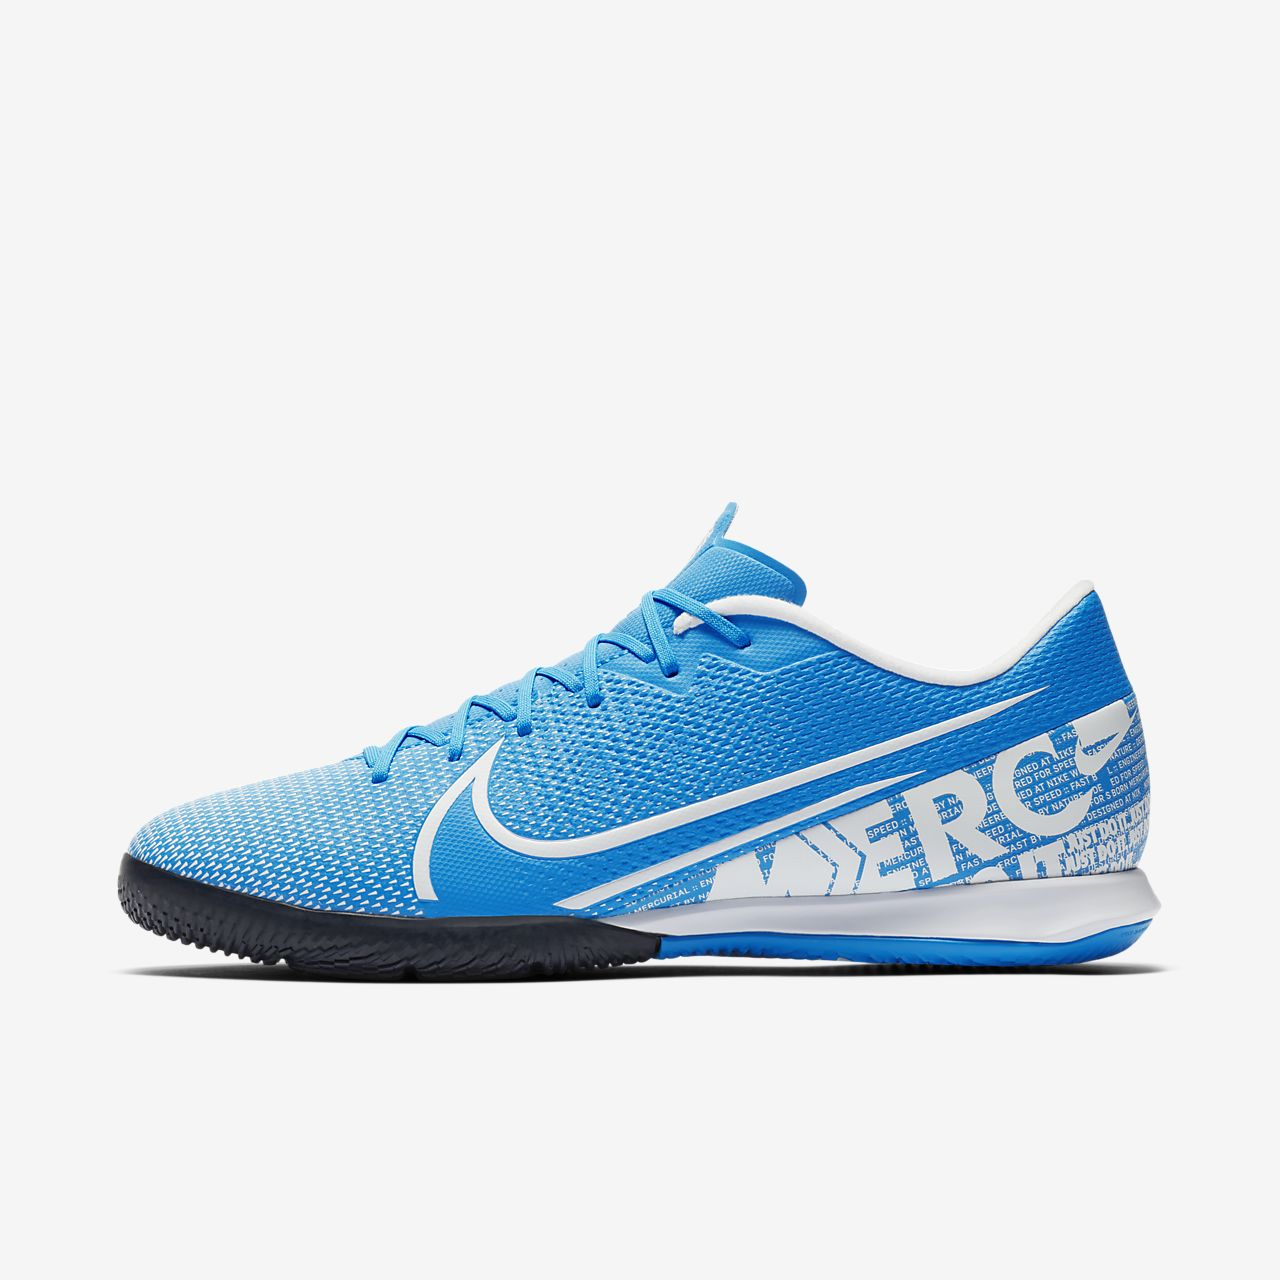 Zapatilla Fútbol Nike Jr Mercurial Vapor 13 Club IC AT8169 414 Deportes Manzanedo